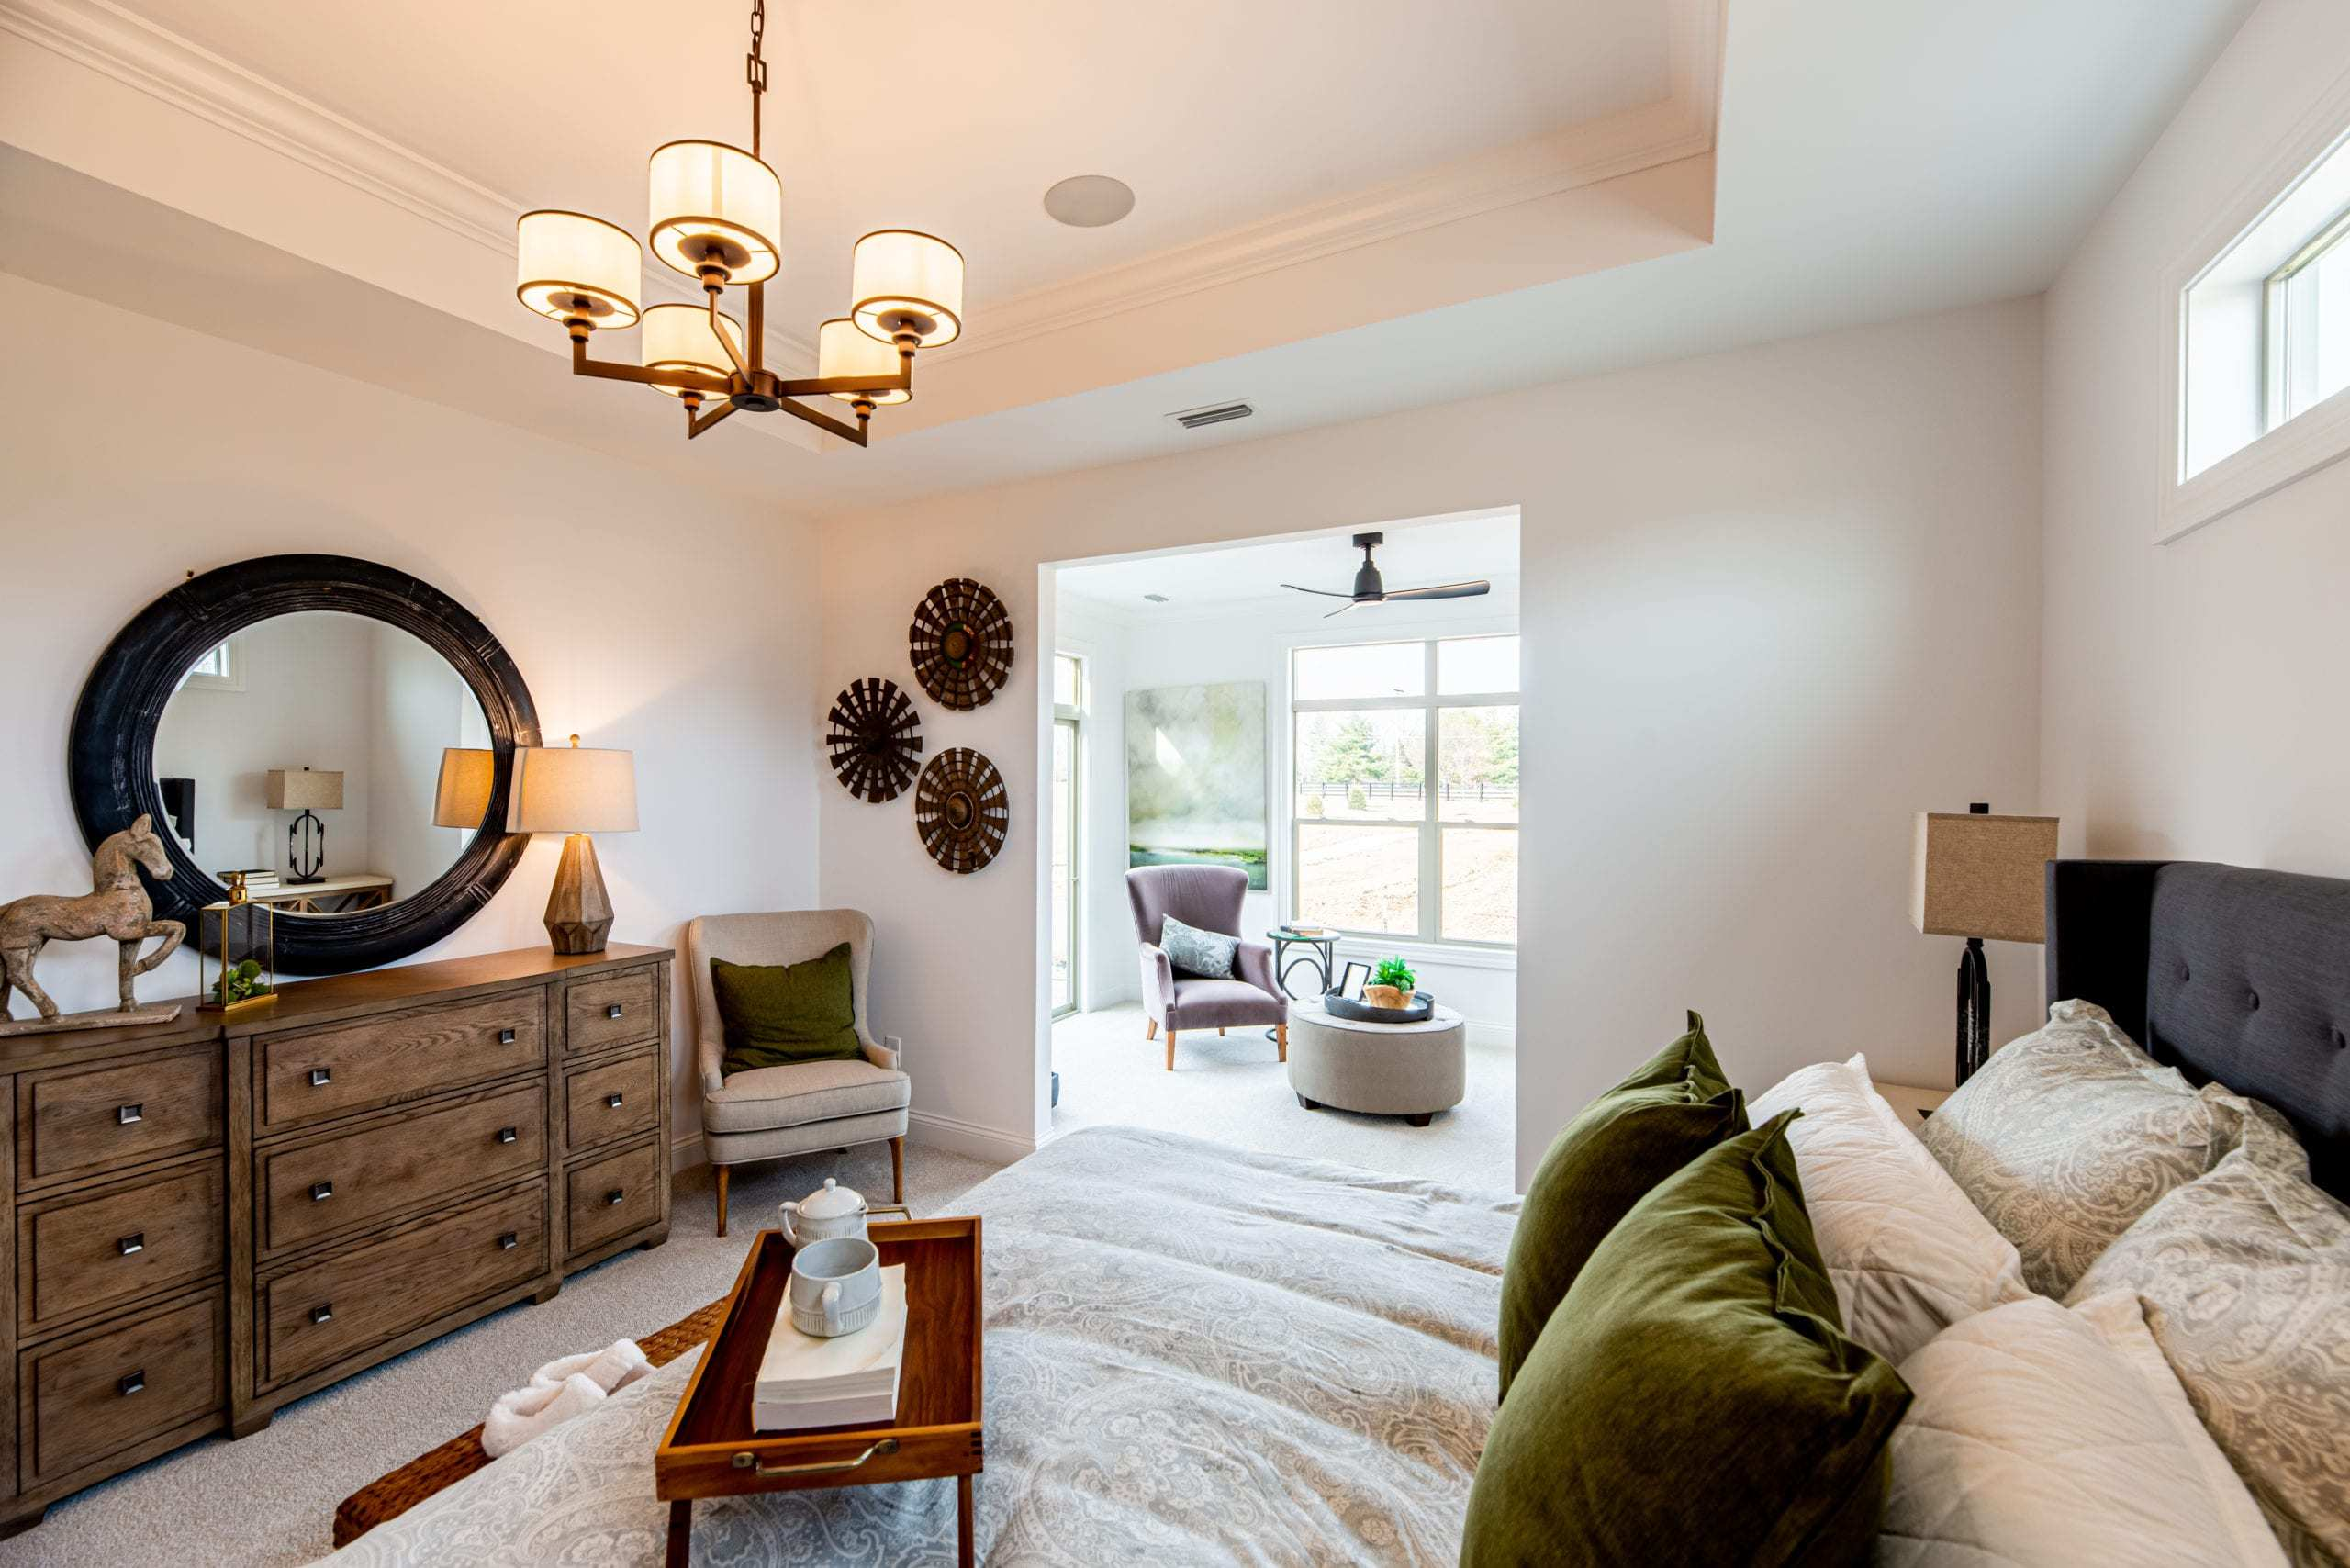 Bedroom featured in the Torino II By Epcon Communities in Columbus, OH